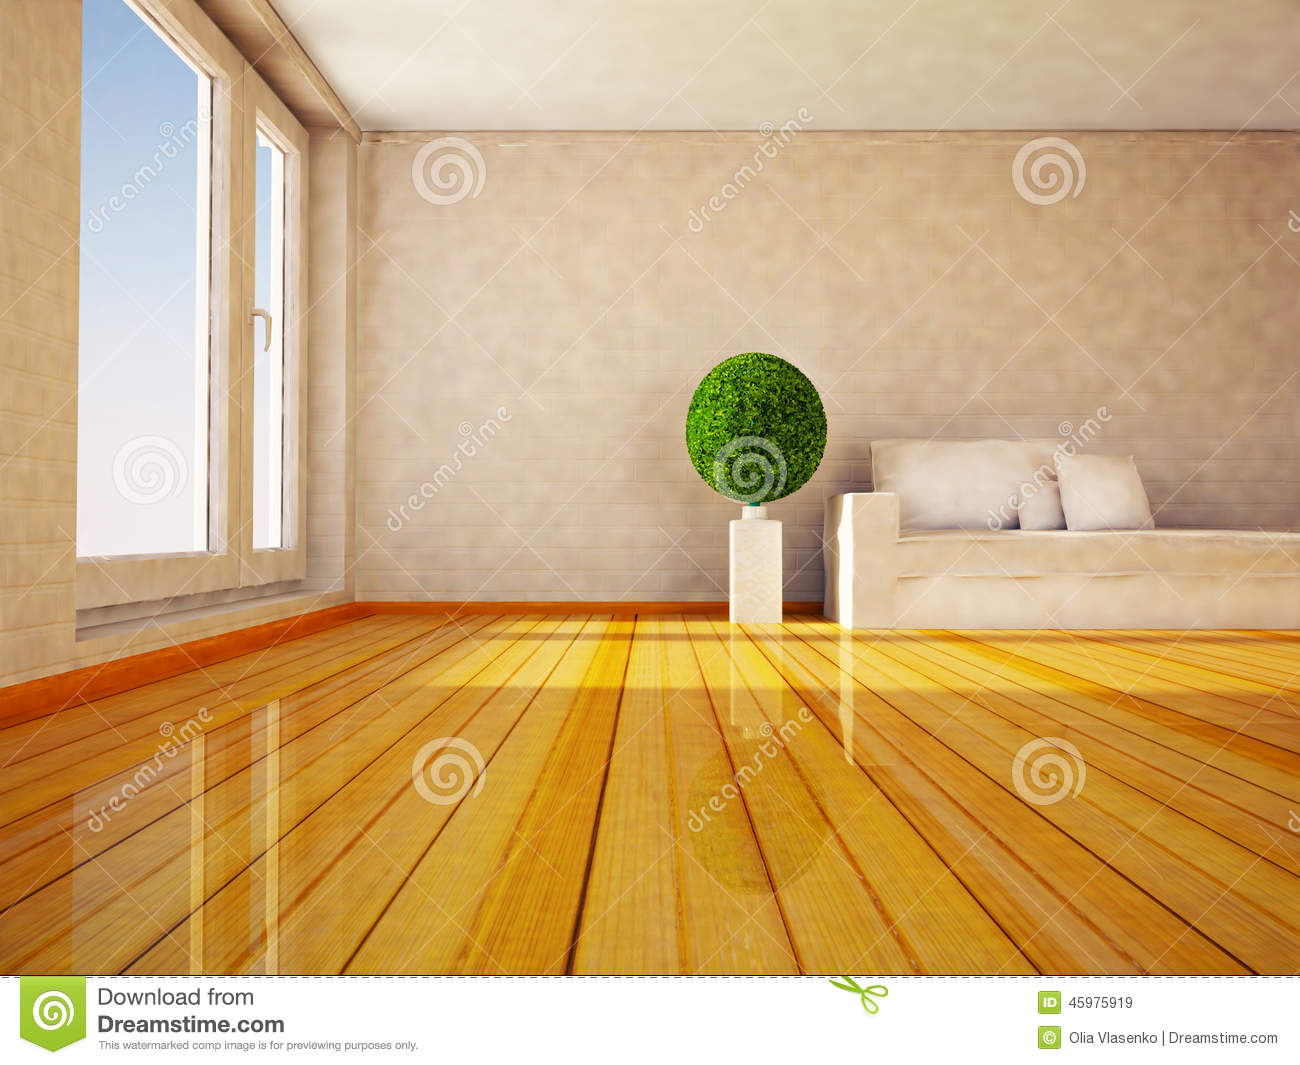 plante verte ronde dans la chambre illustration stock image 45975919. Black Bedroom Furniture Sets. Home Design Ideas